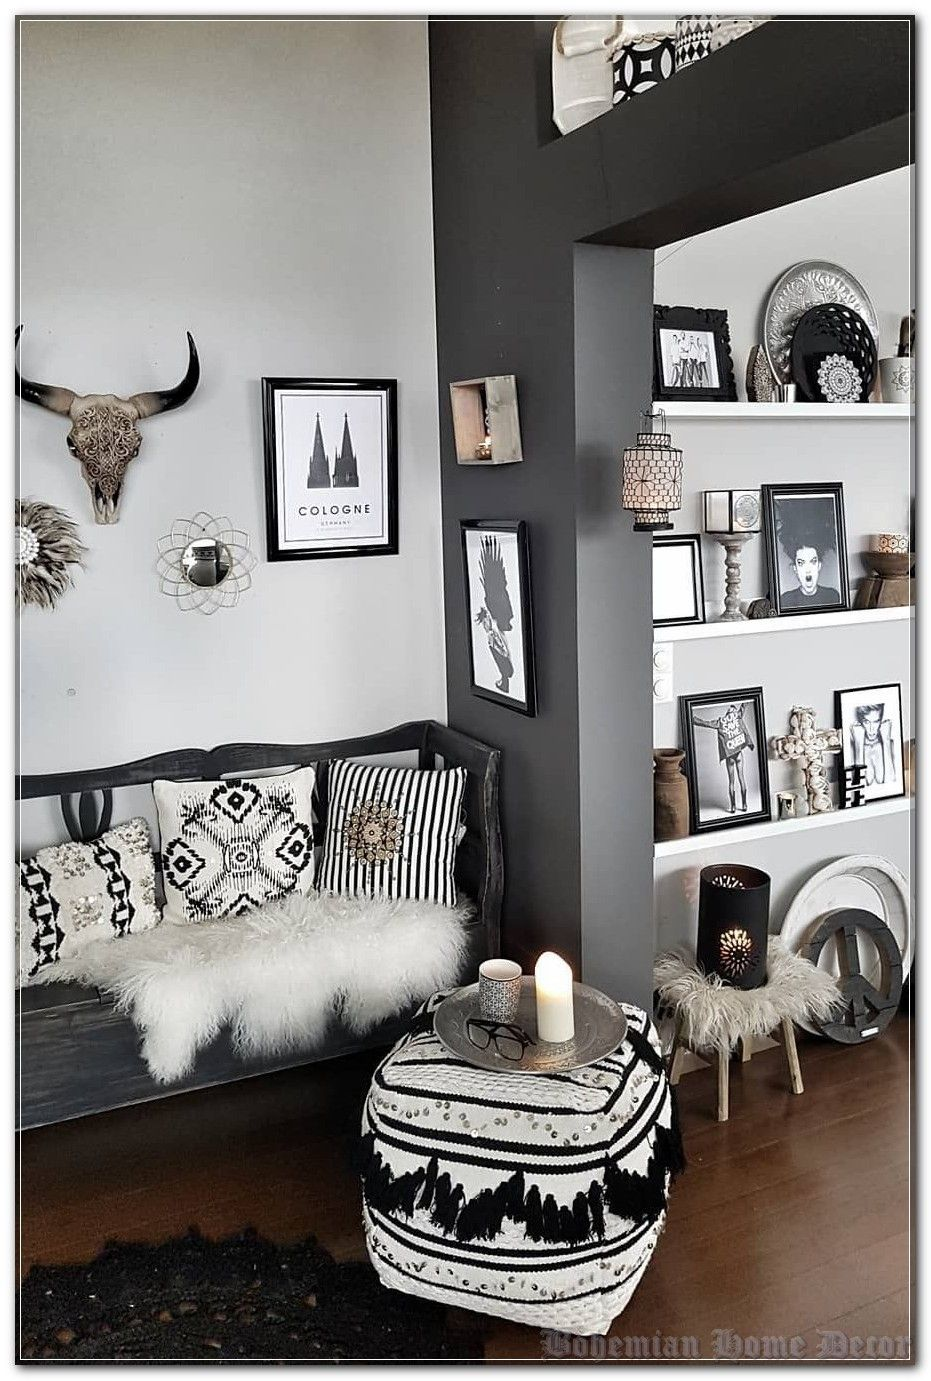 How to Create Your Bohemian Home Decor Strategy [Blueprint]